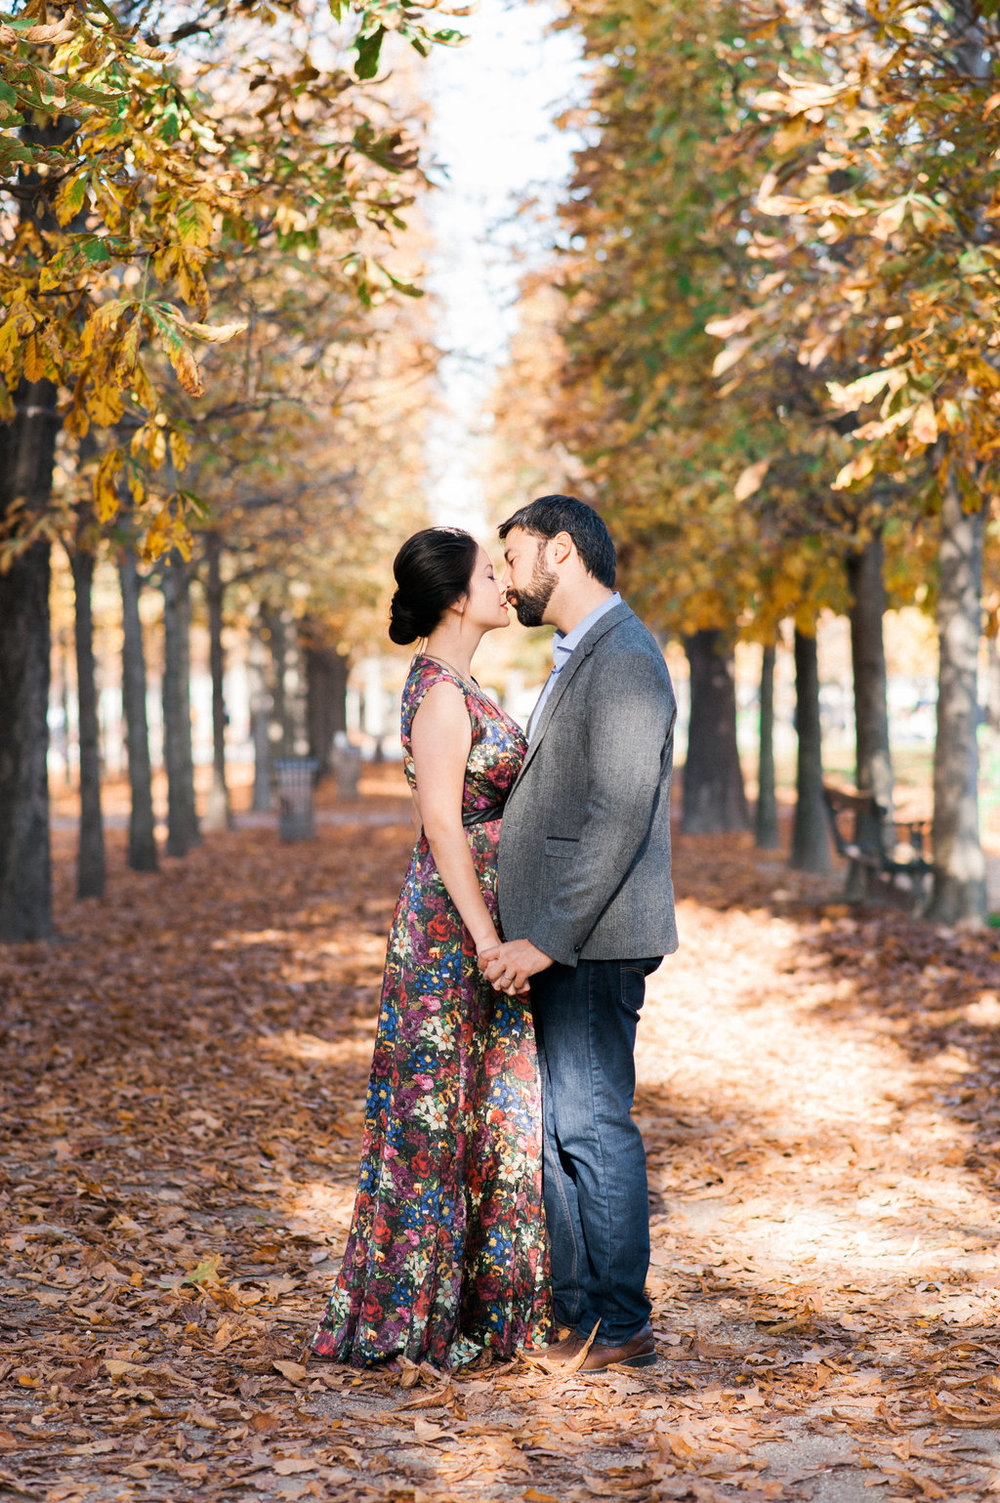 parisian_autumn_engagement_tuileries_garden (29).jpg